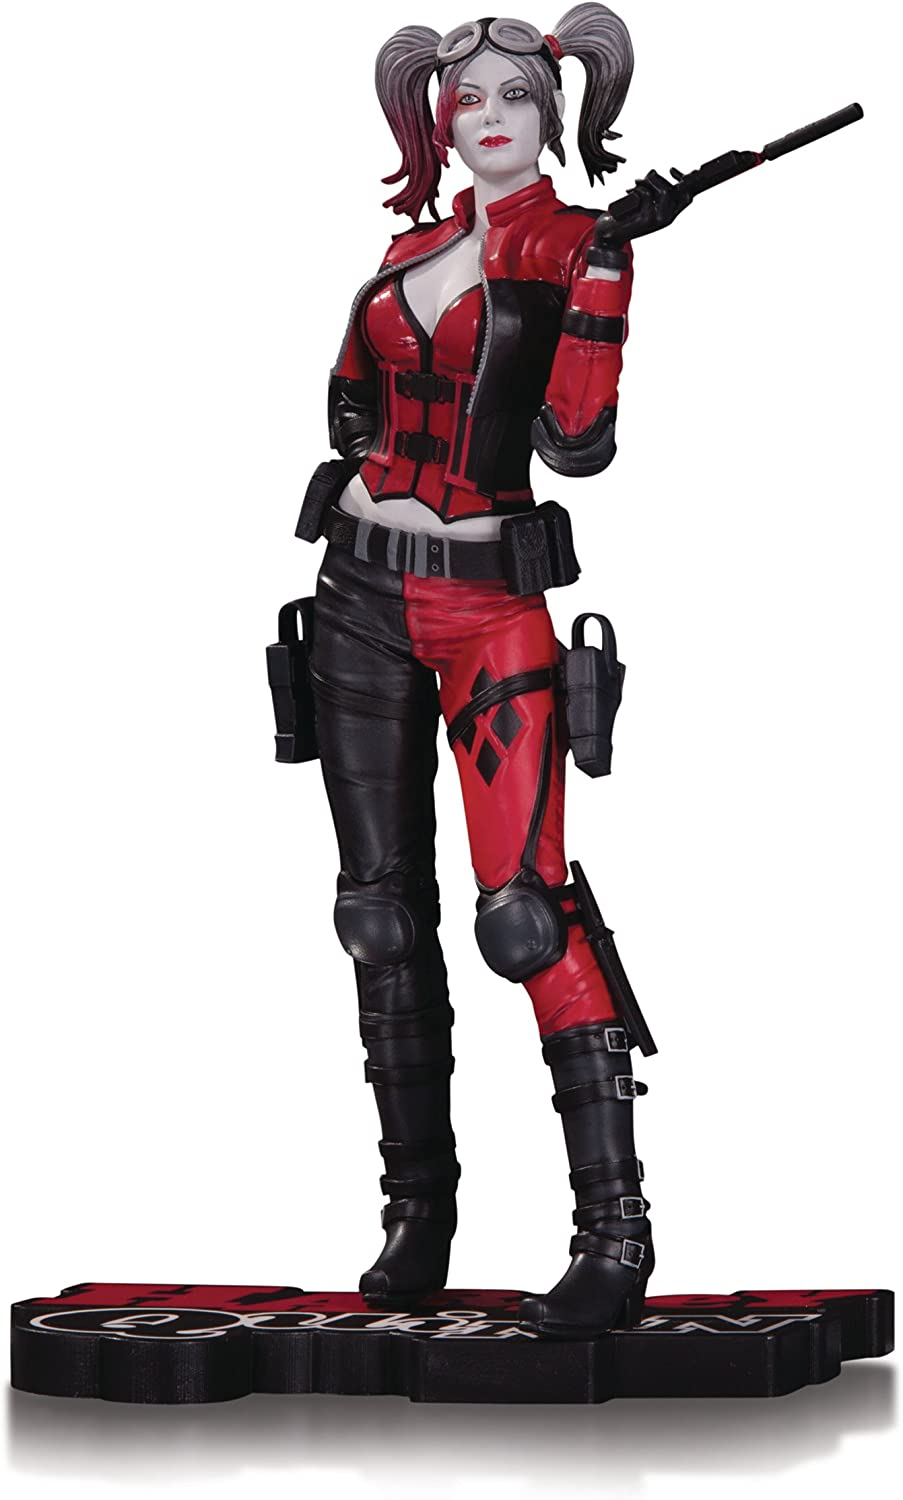 DC Comics OCT160338 Injustice 2 Harley Quinn Red White and Black Statue